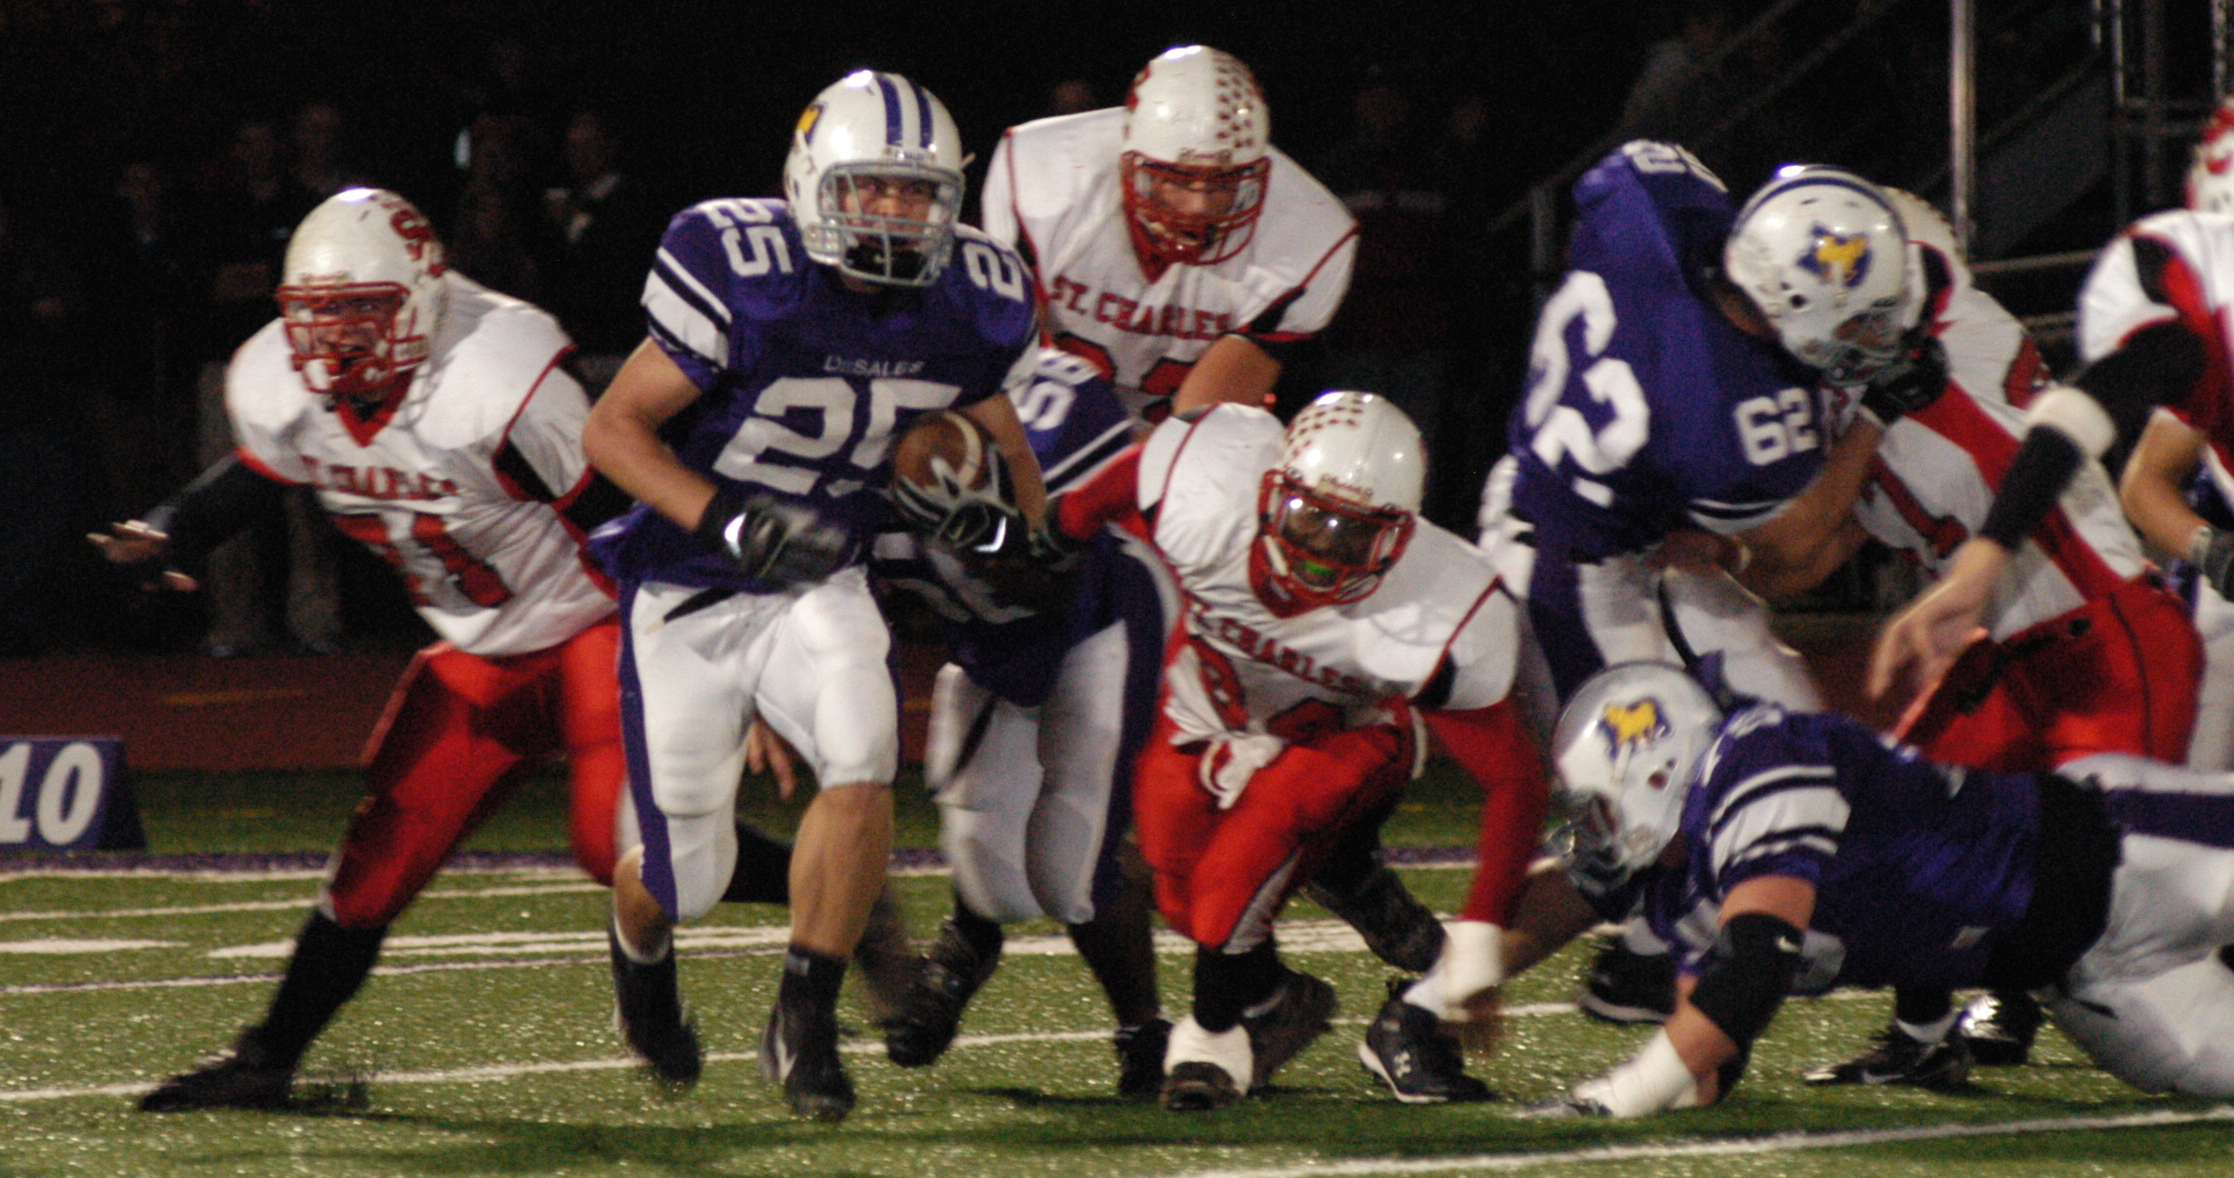 Junior running back Ryan Clark (25) rushed for 151 yards in the 30th straight win over St. Charles